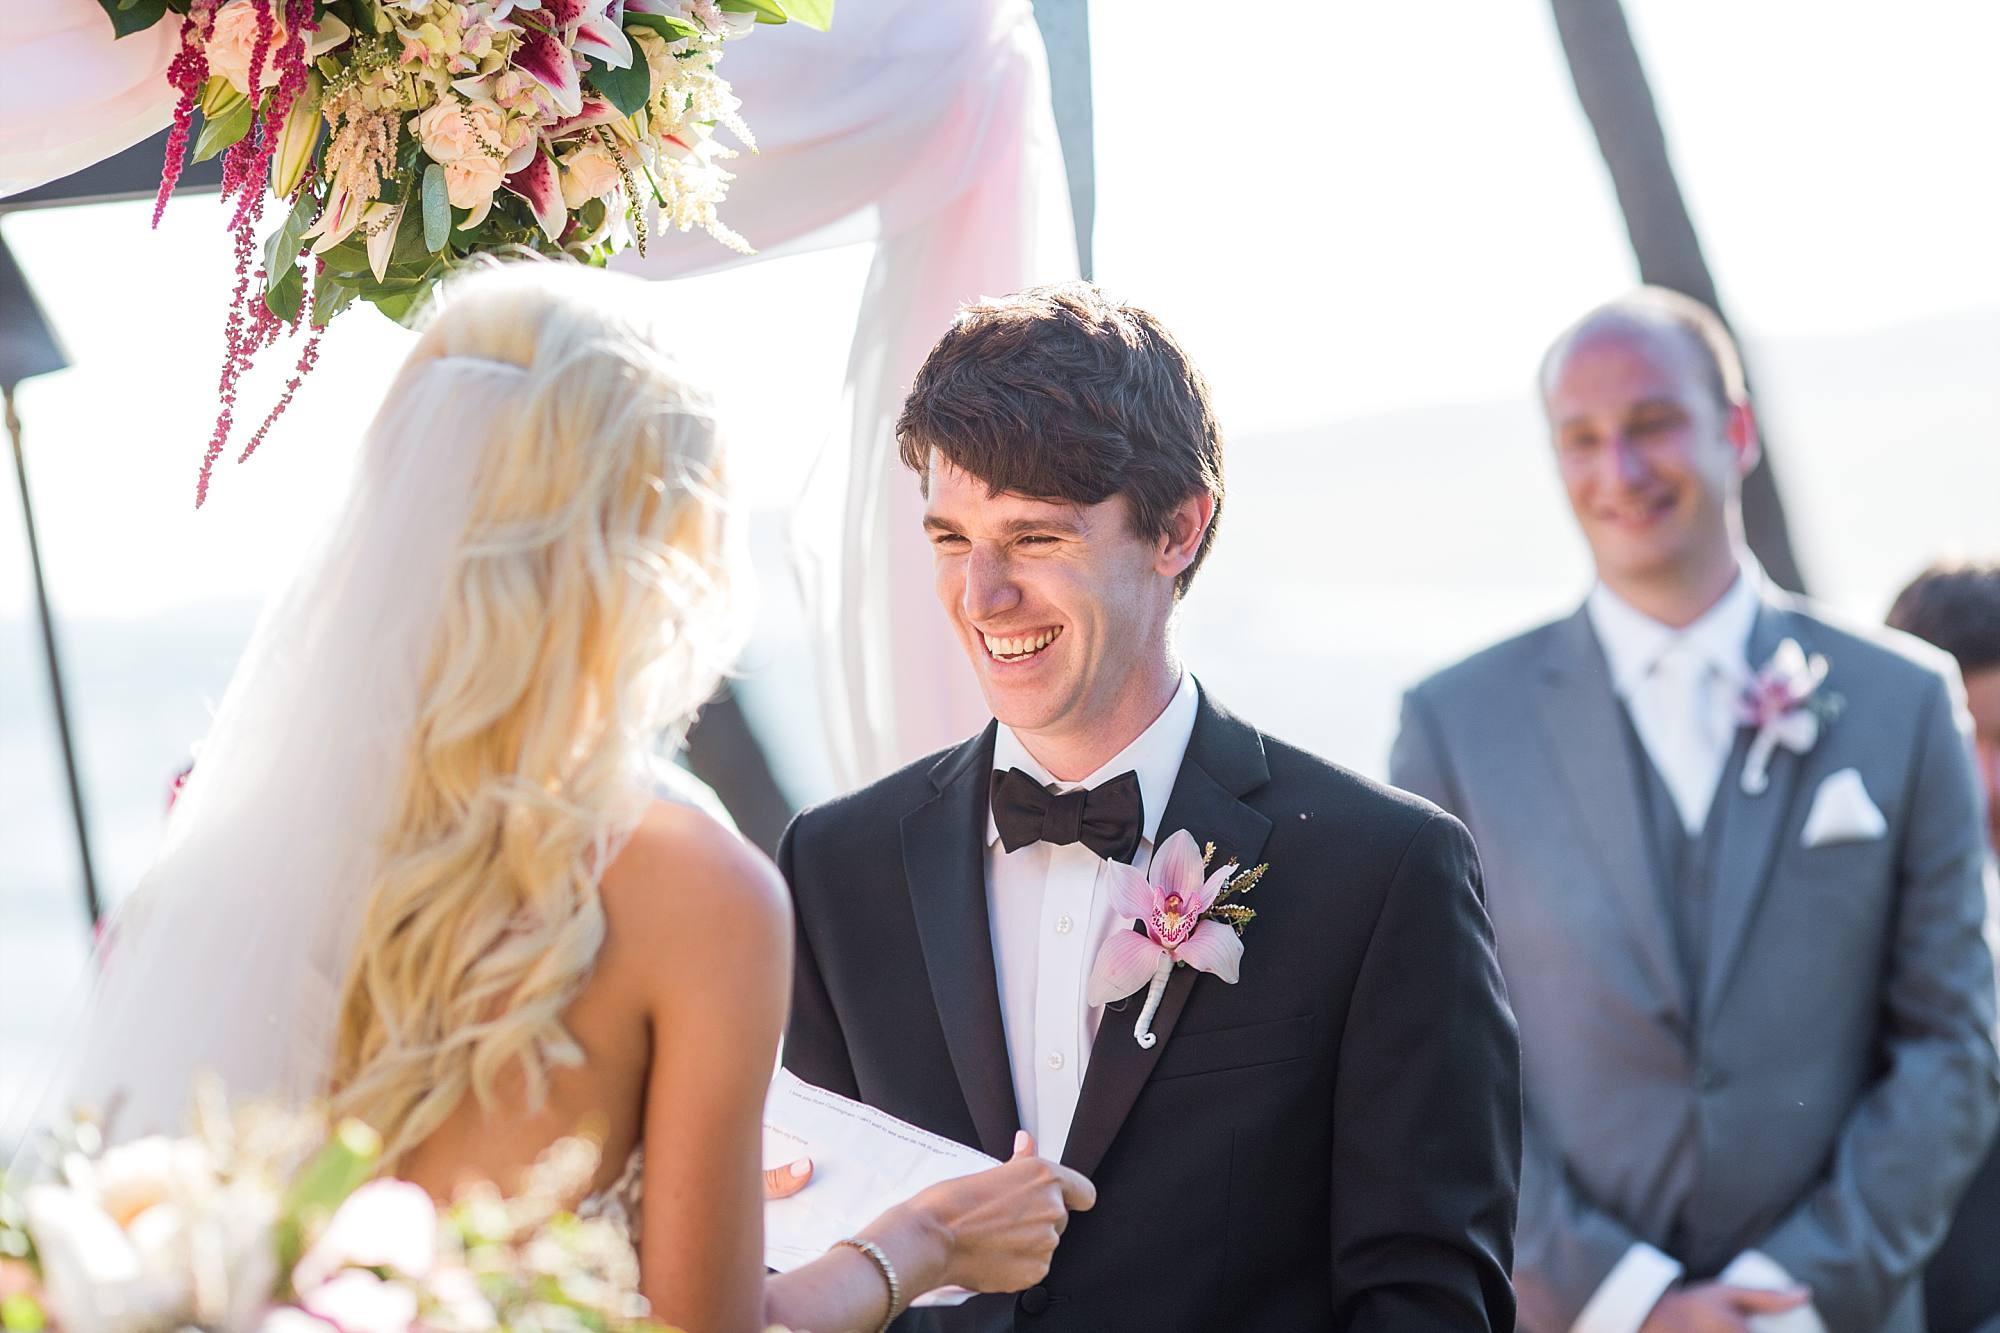 groom laughing as his bride reads her self-written vows